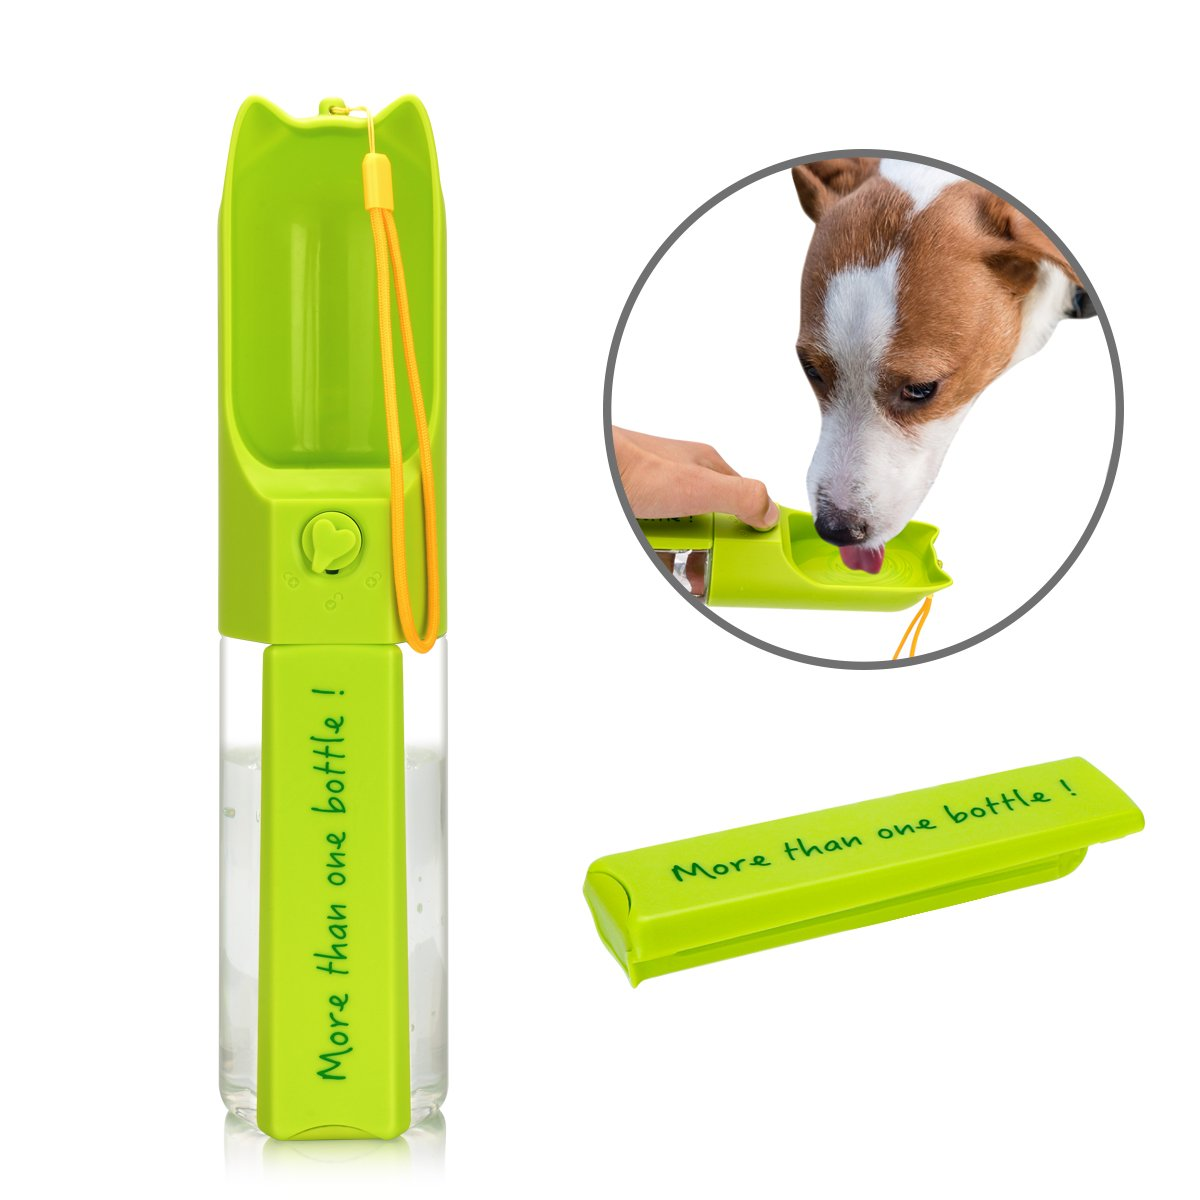 XUANRUS Dog Travel Water Bottle, Portable Pet Water Dispenser Drink Bottle for Daily Walks, Hiking, Camping, Beach, BPA Free Plastic with Pet Food Box